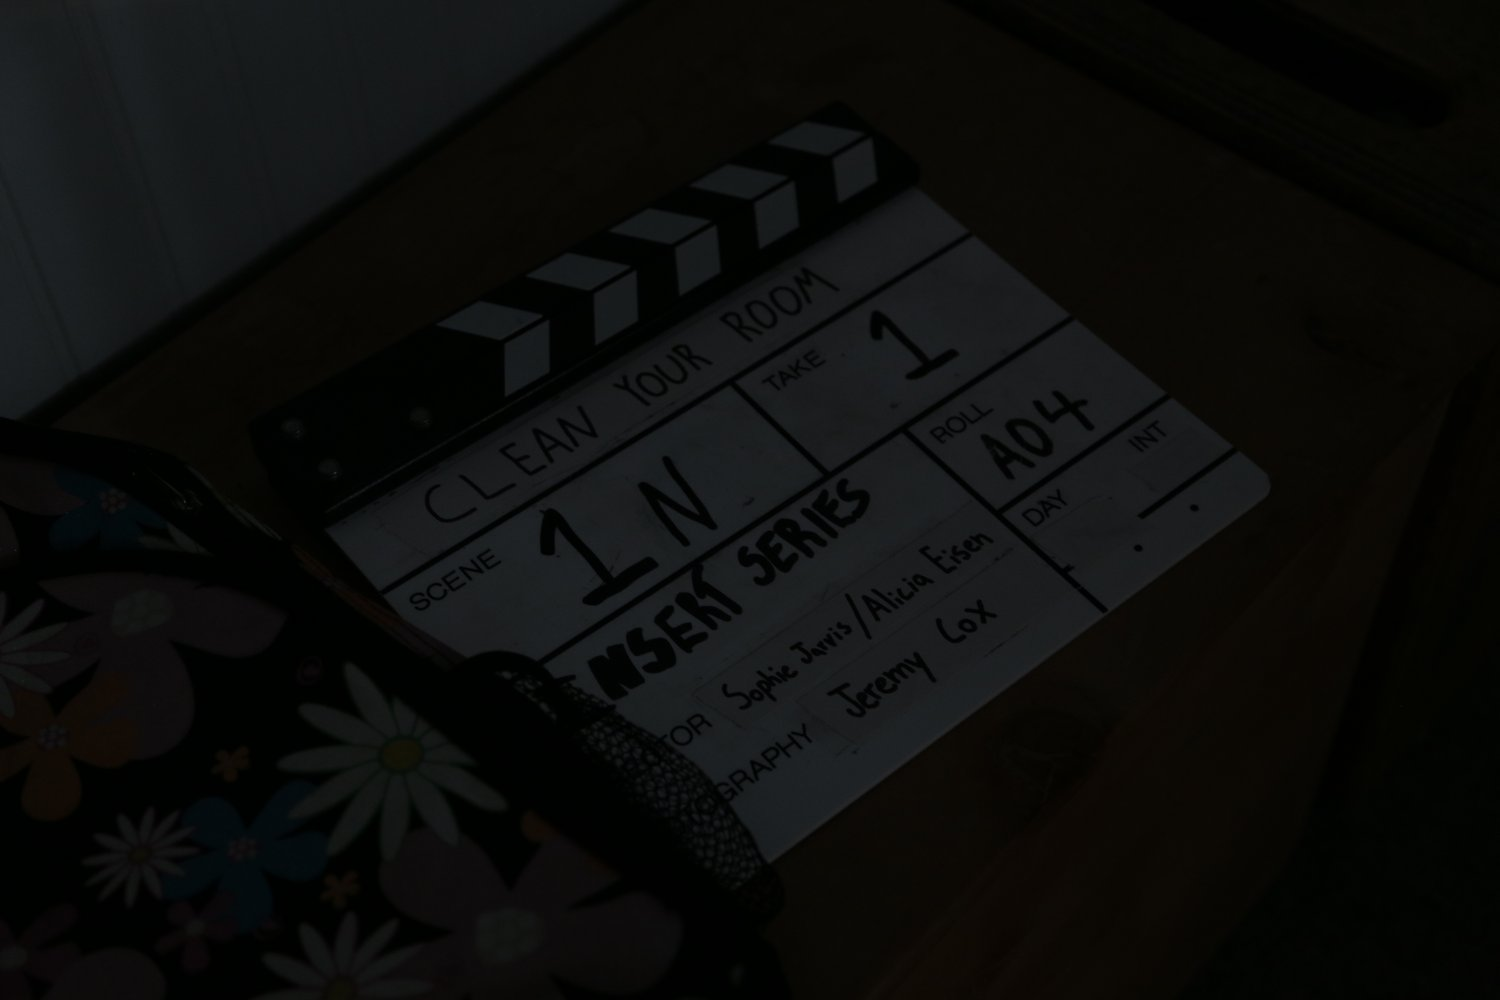 Completing Scene 1 of the film.